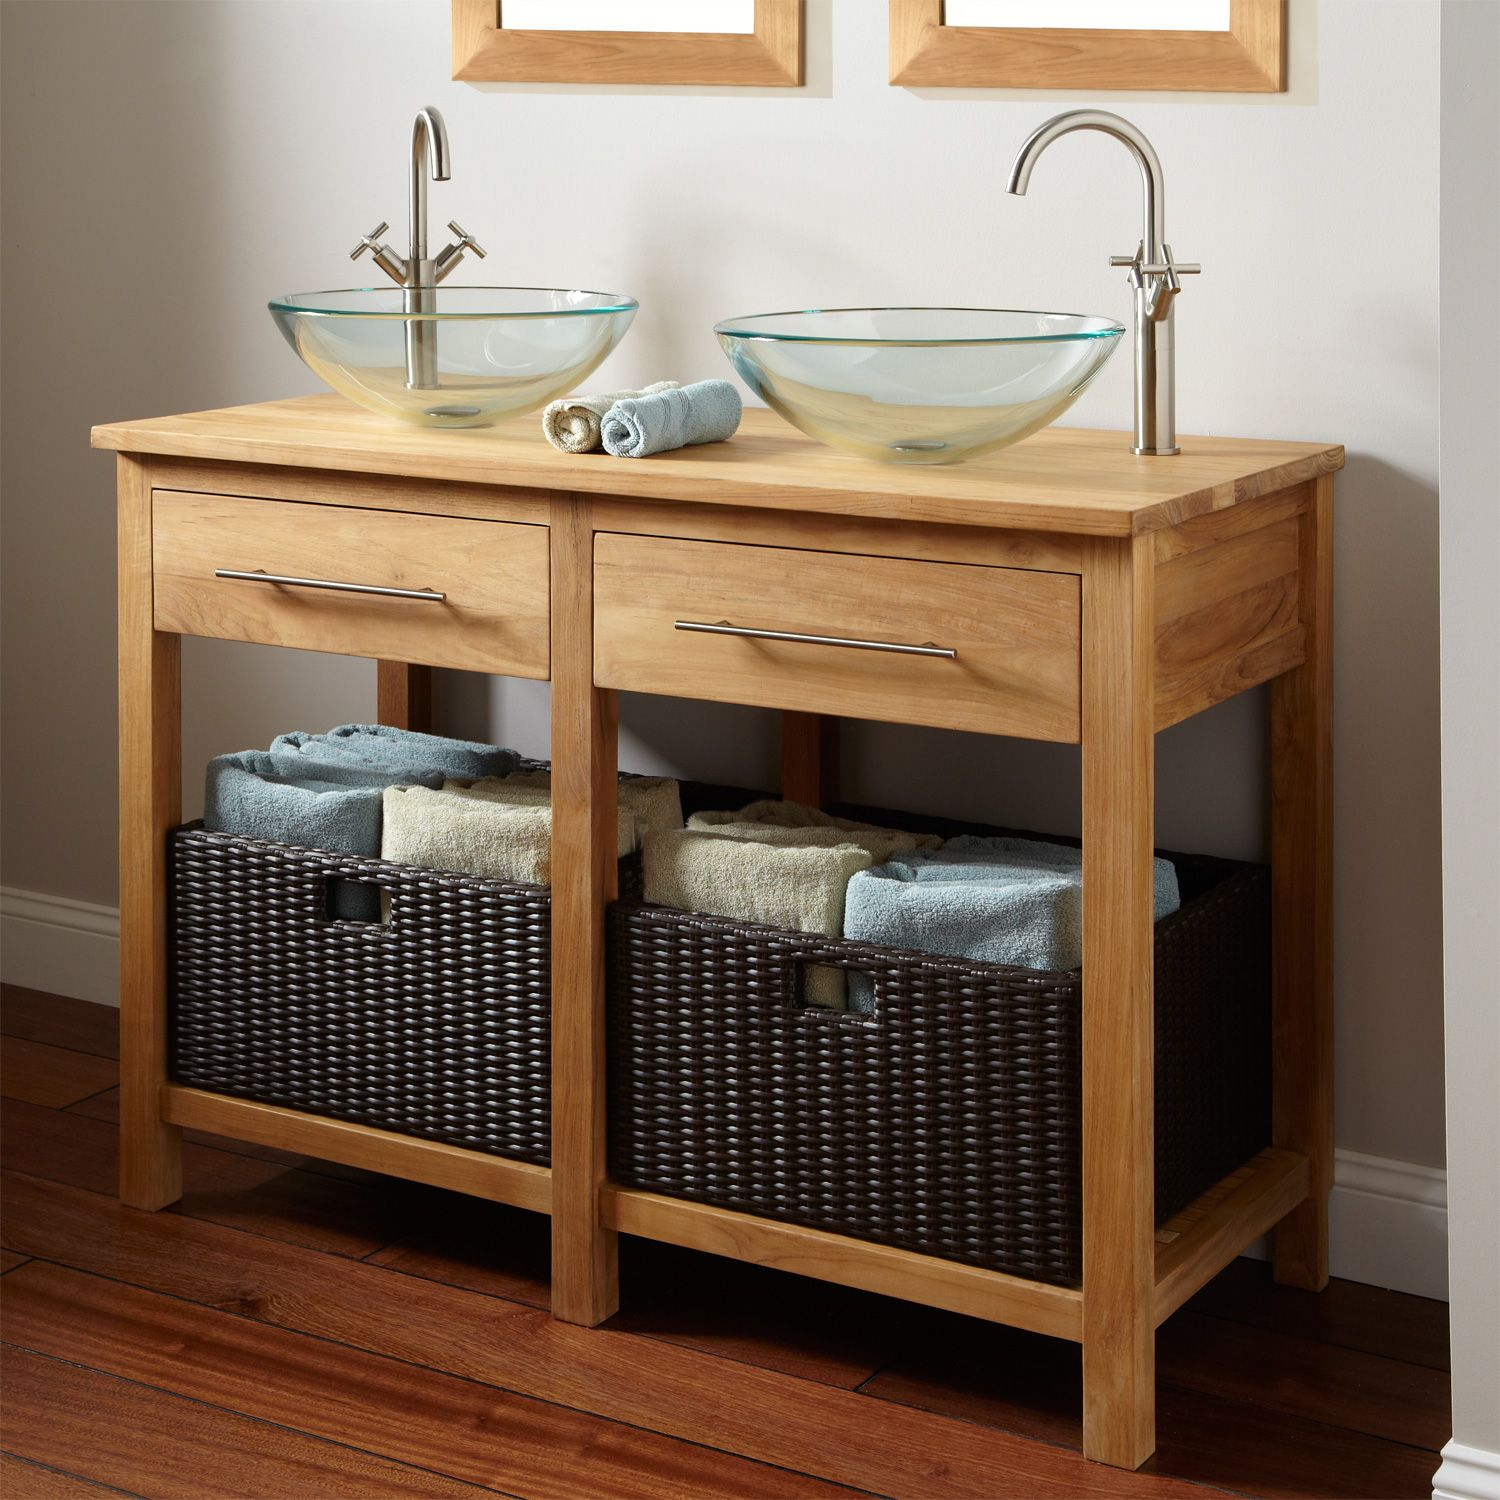 Diy Bathroom Vanity  Save Money By Making Your Own Rustic - Bathroom sinks and vanities for small spaces